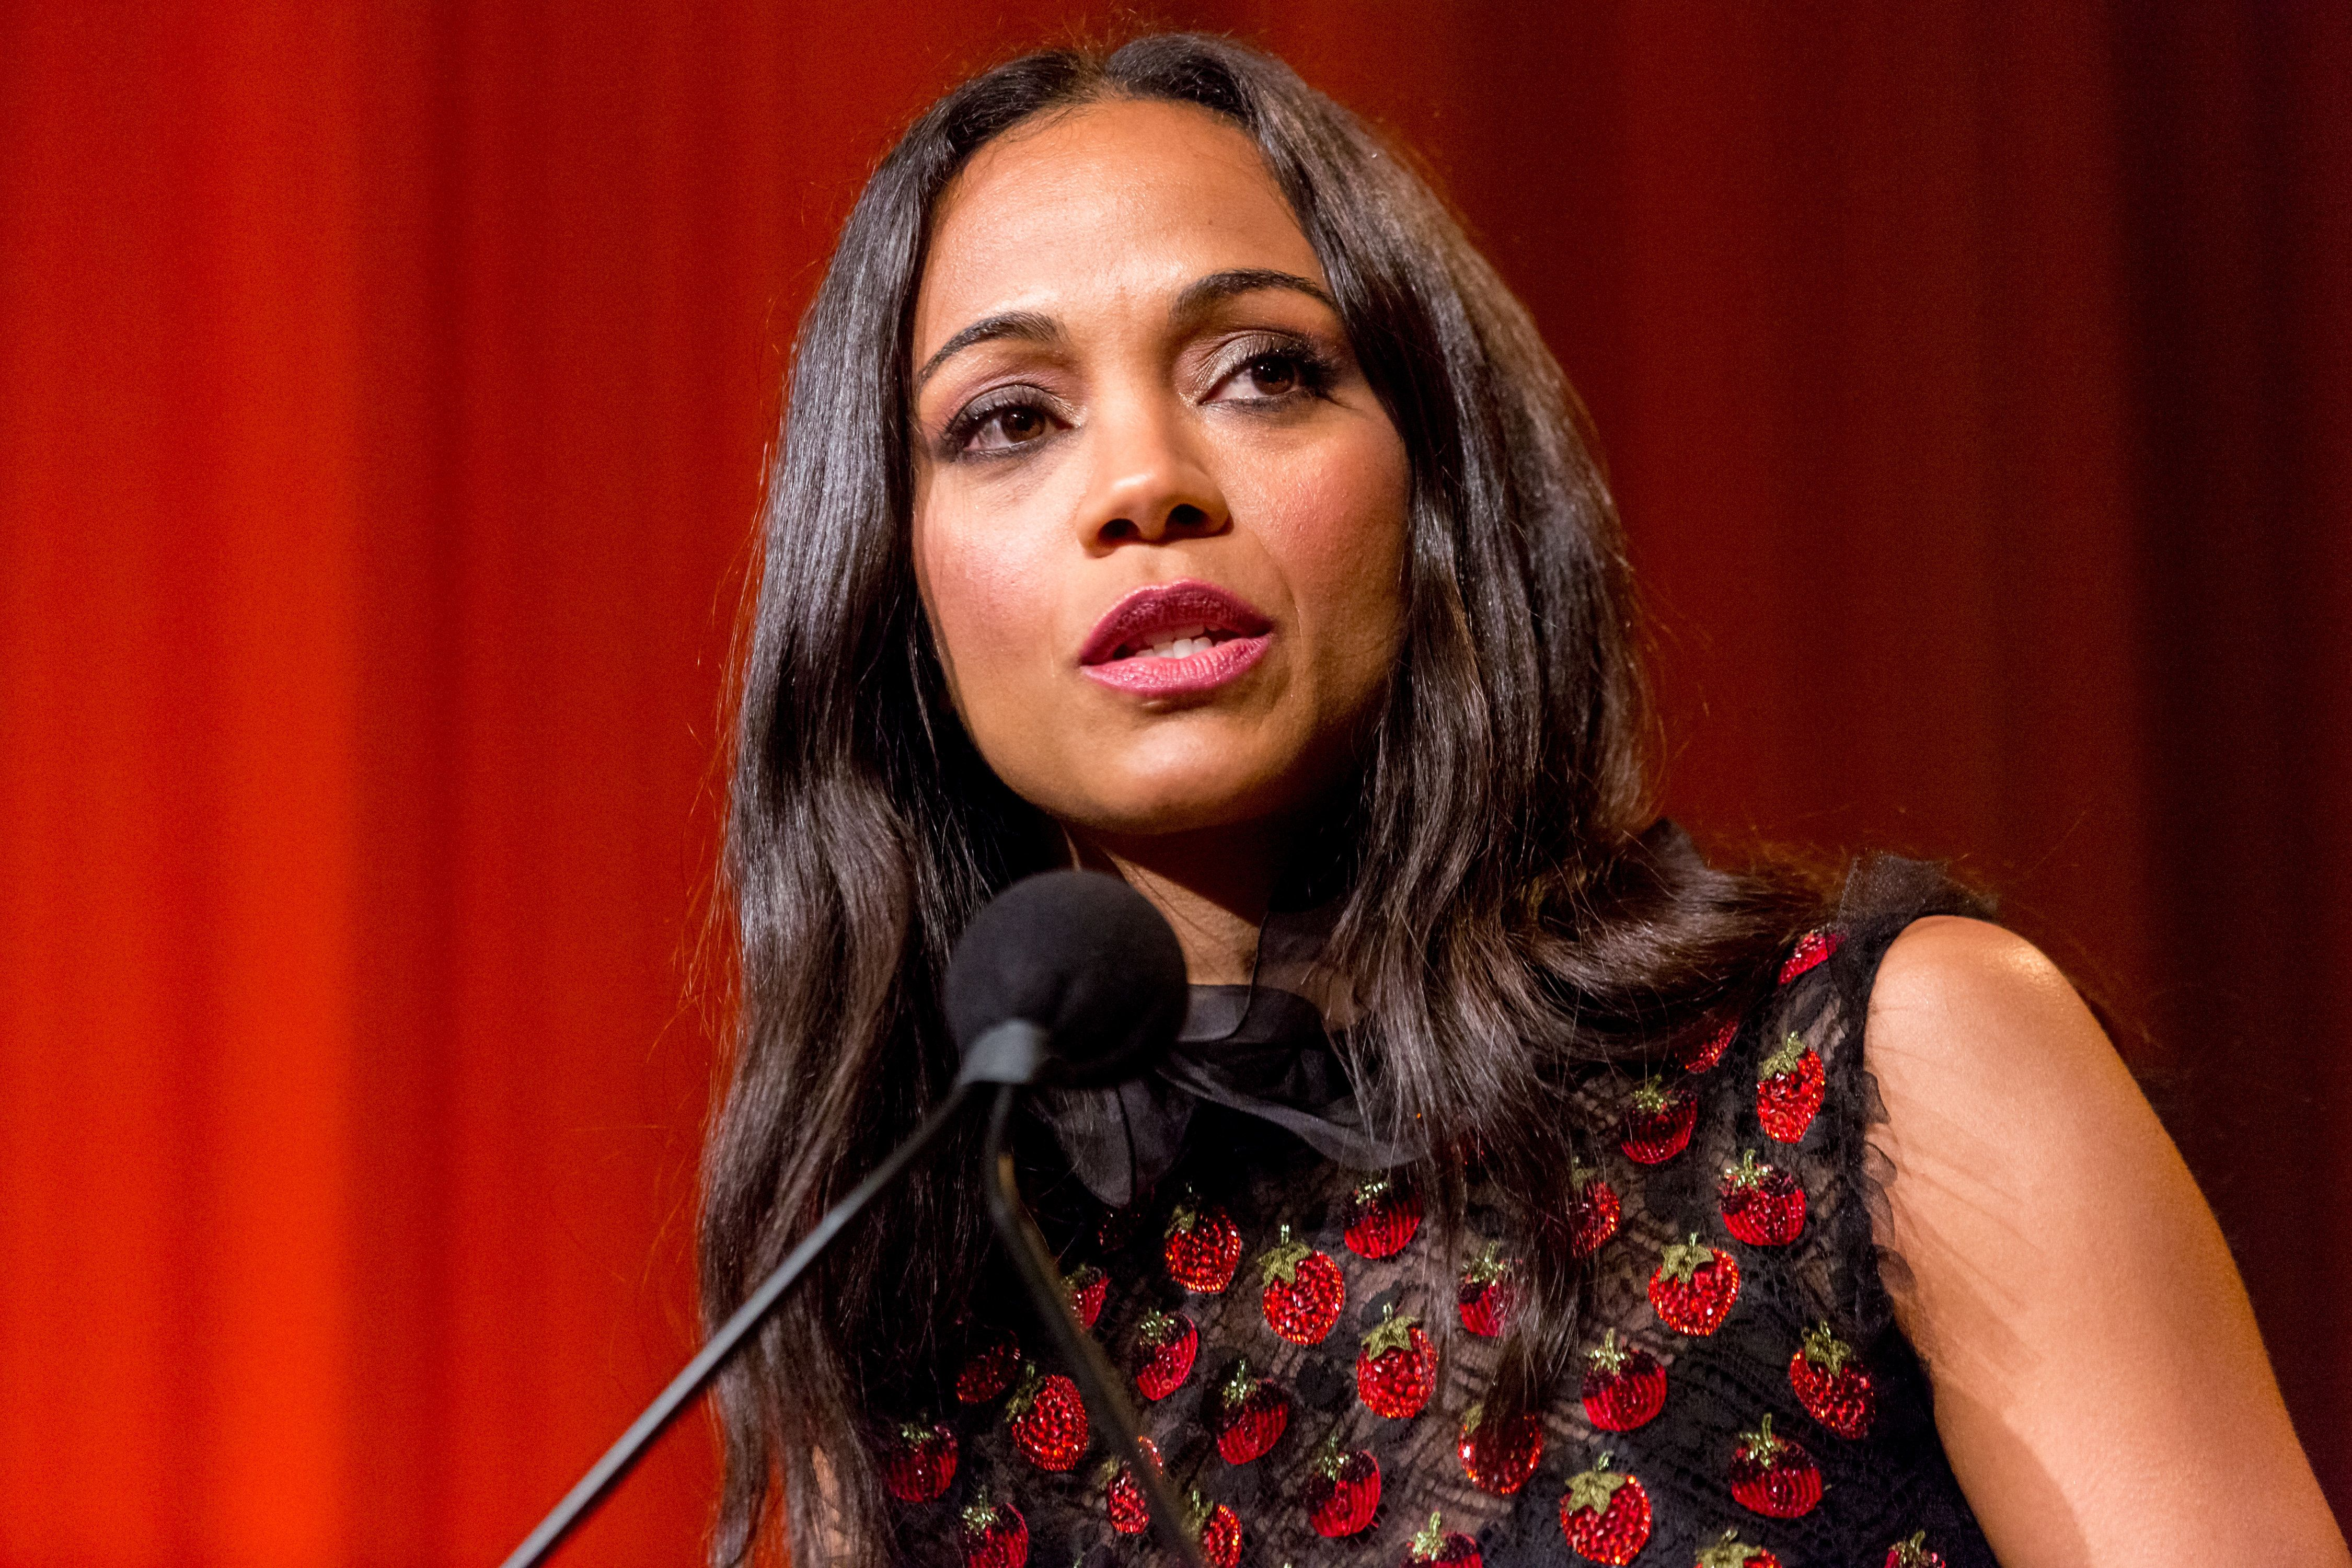 Zoe Saldana will be the founder and CEO of BeSe.